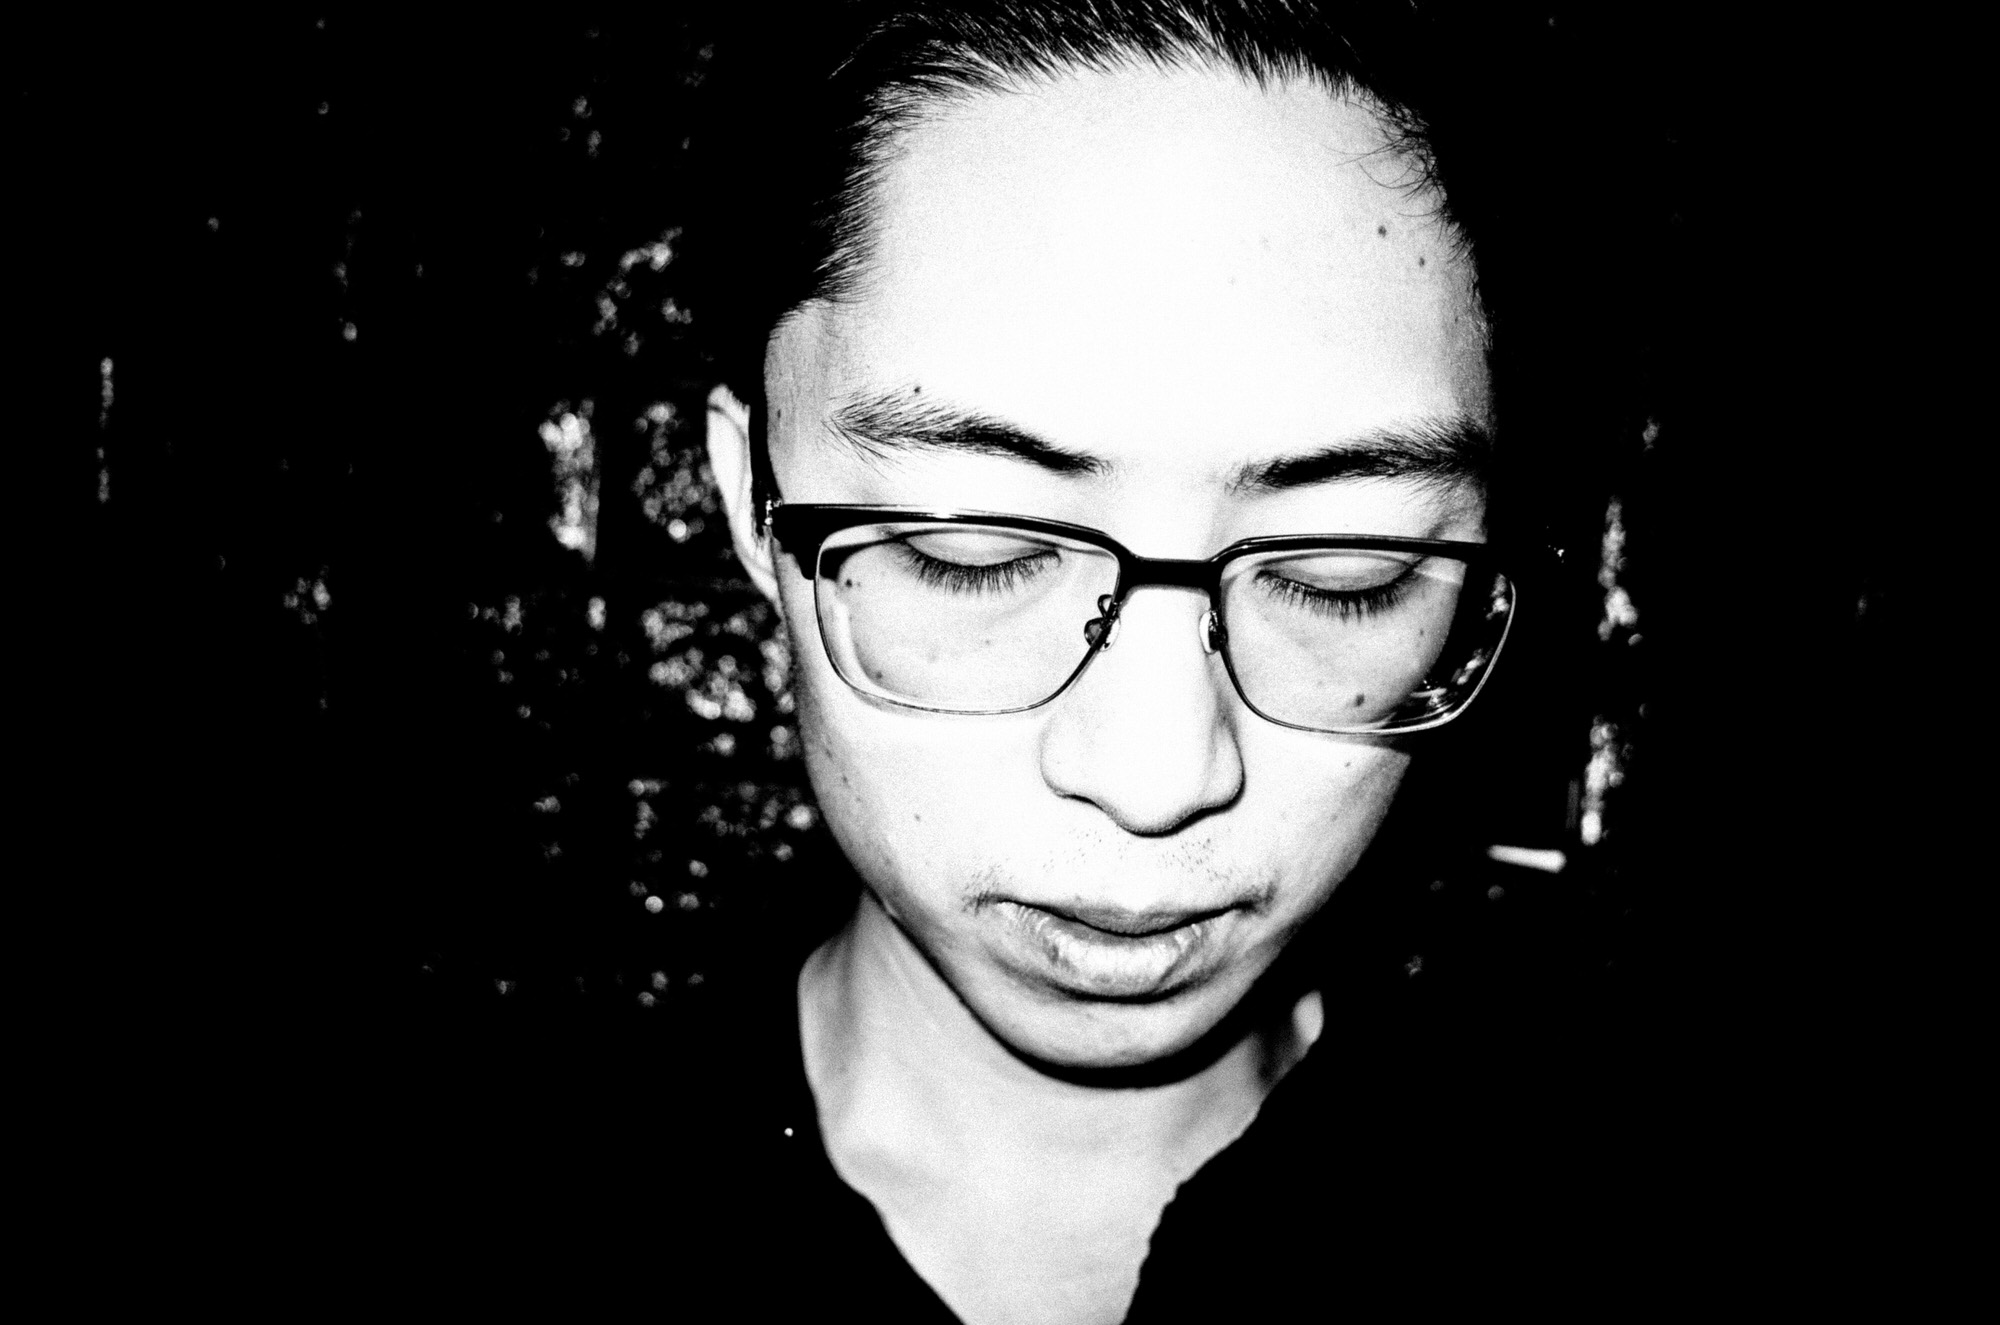 eric kim photography black and white hanoi-0009770-self portrait - looking down